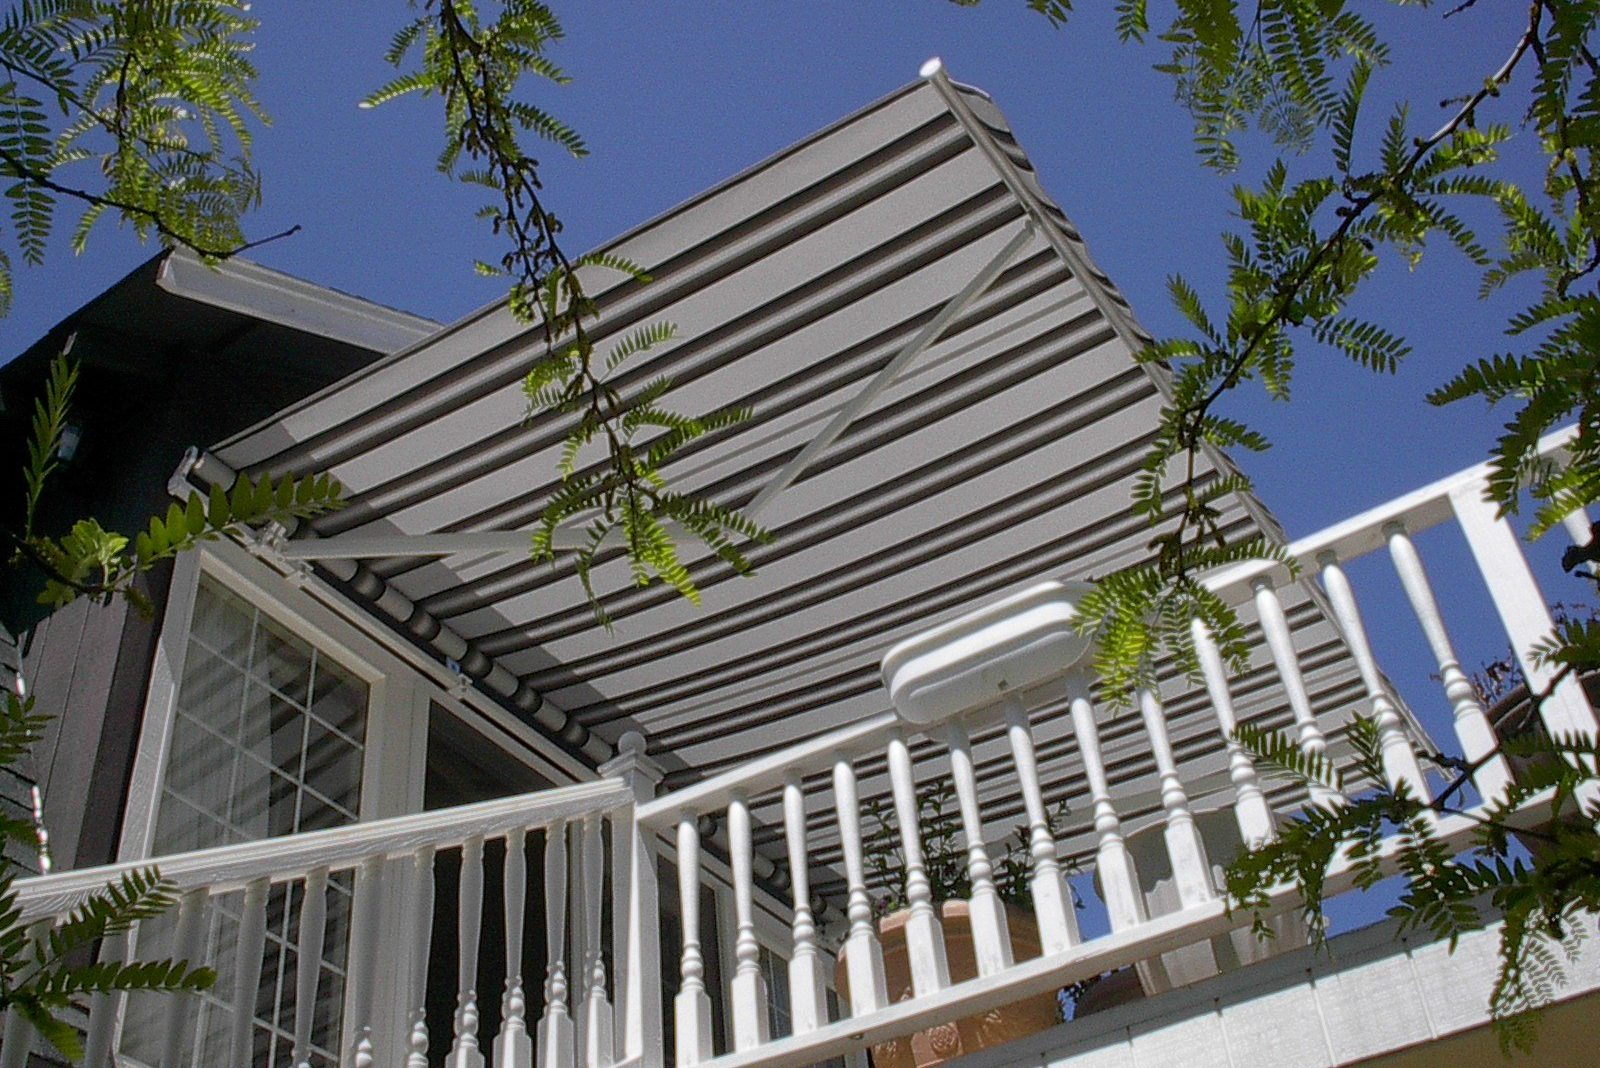 Folding Arm Awnings 21